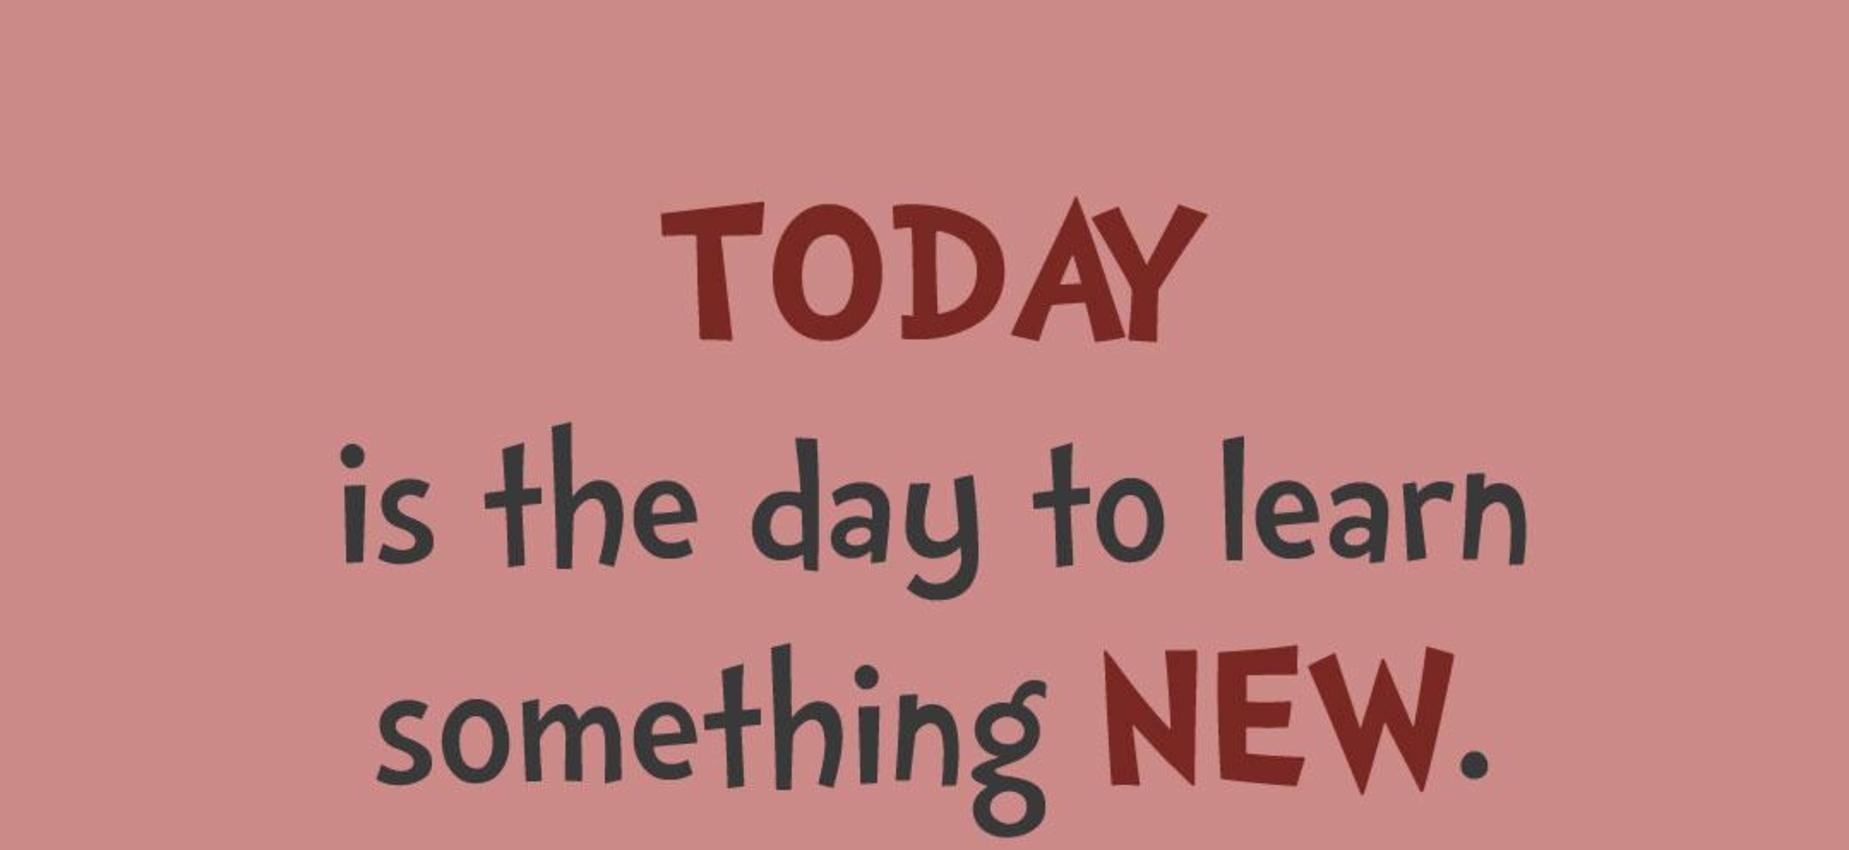 Today is the day to learn something NEW.